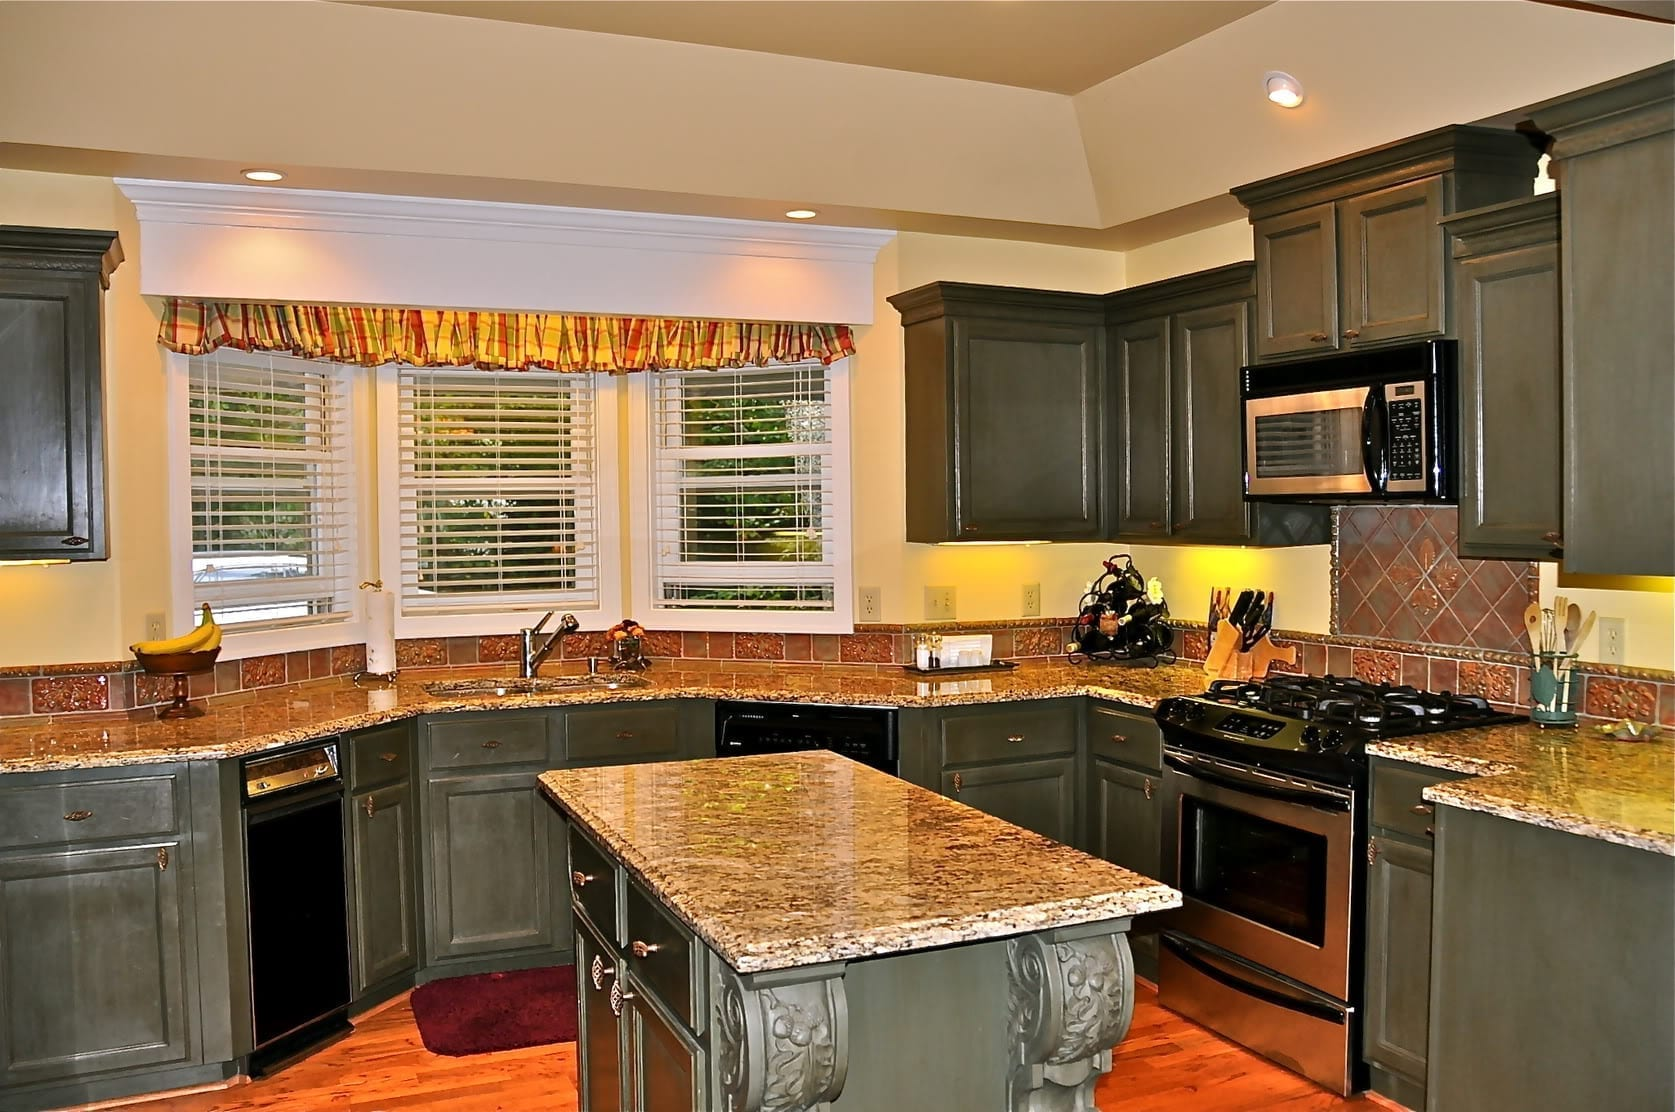 Remodelling Kitchen Interior Design Gallery Kitchen Remodel